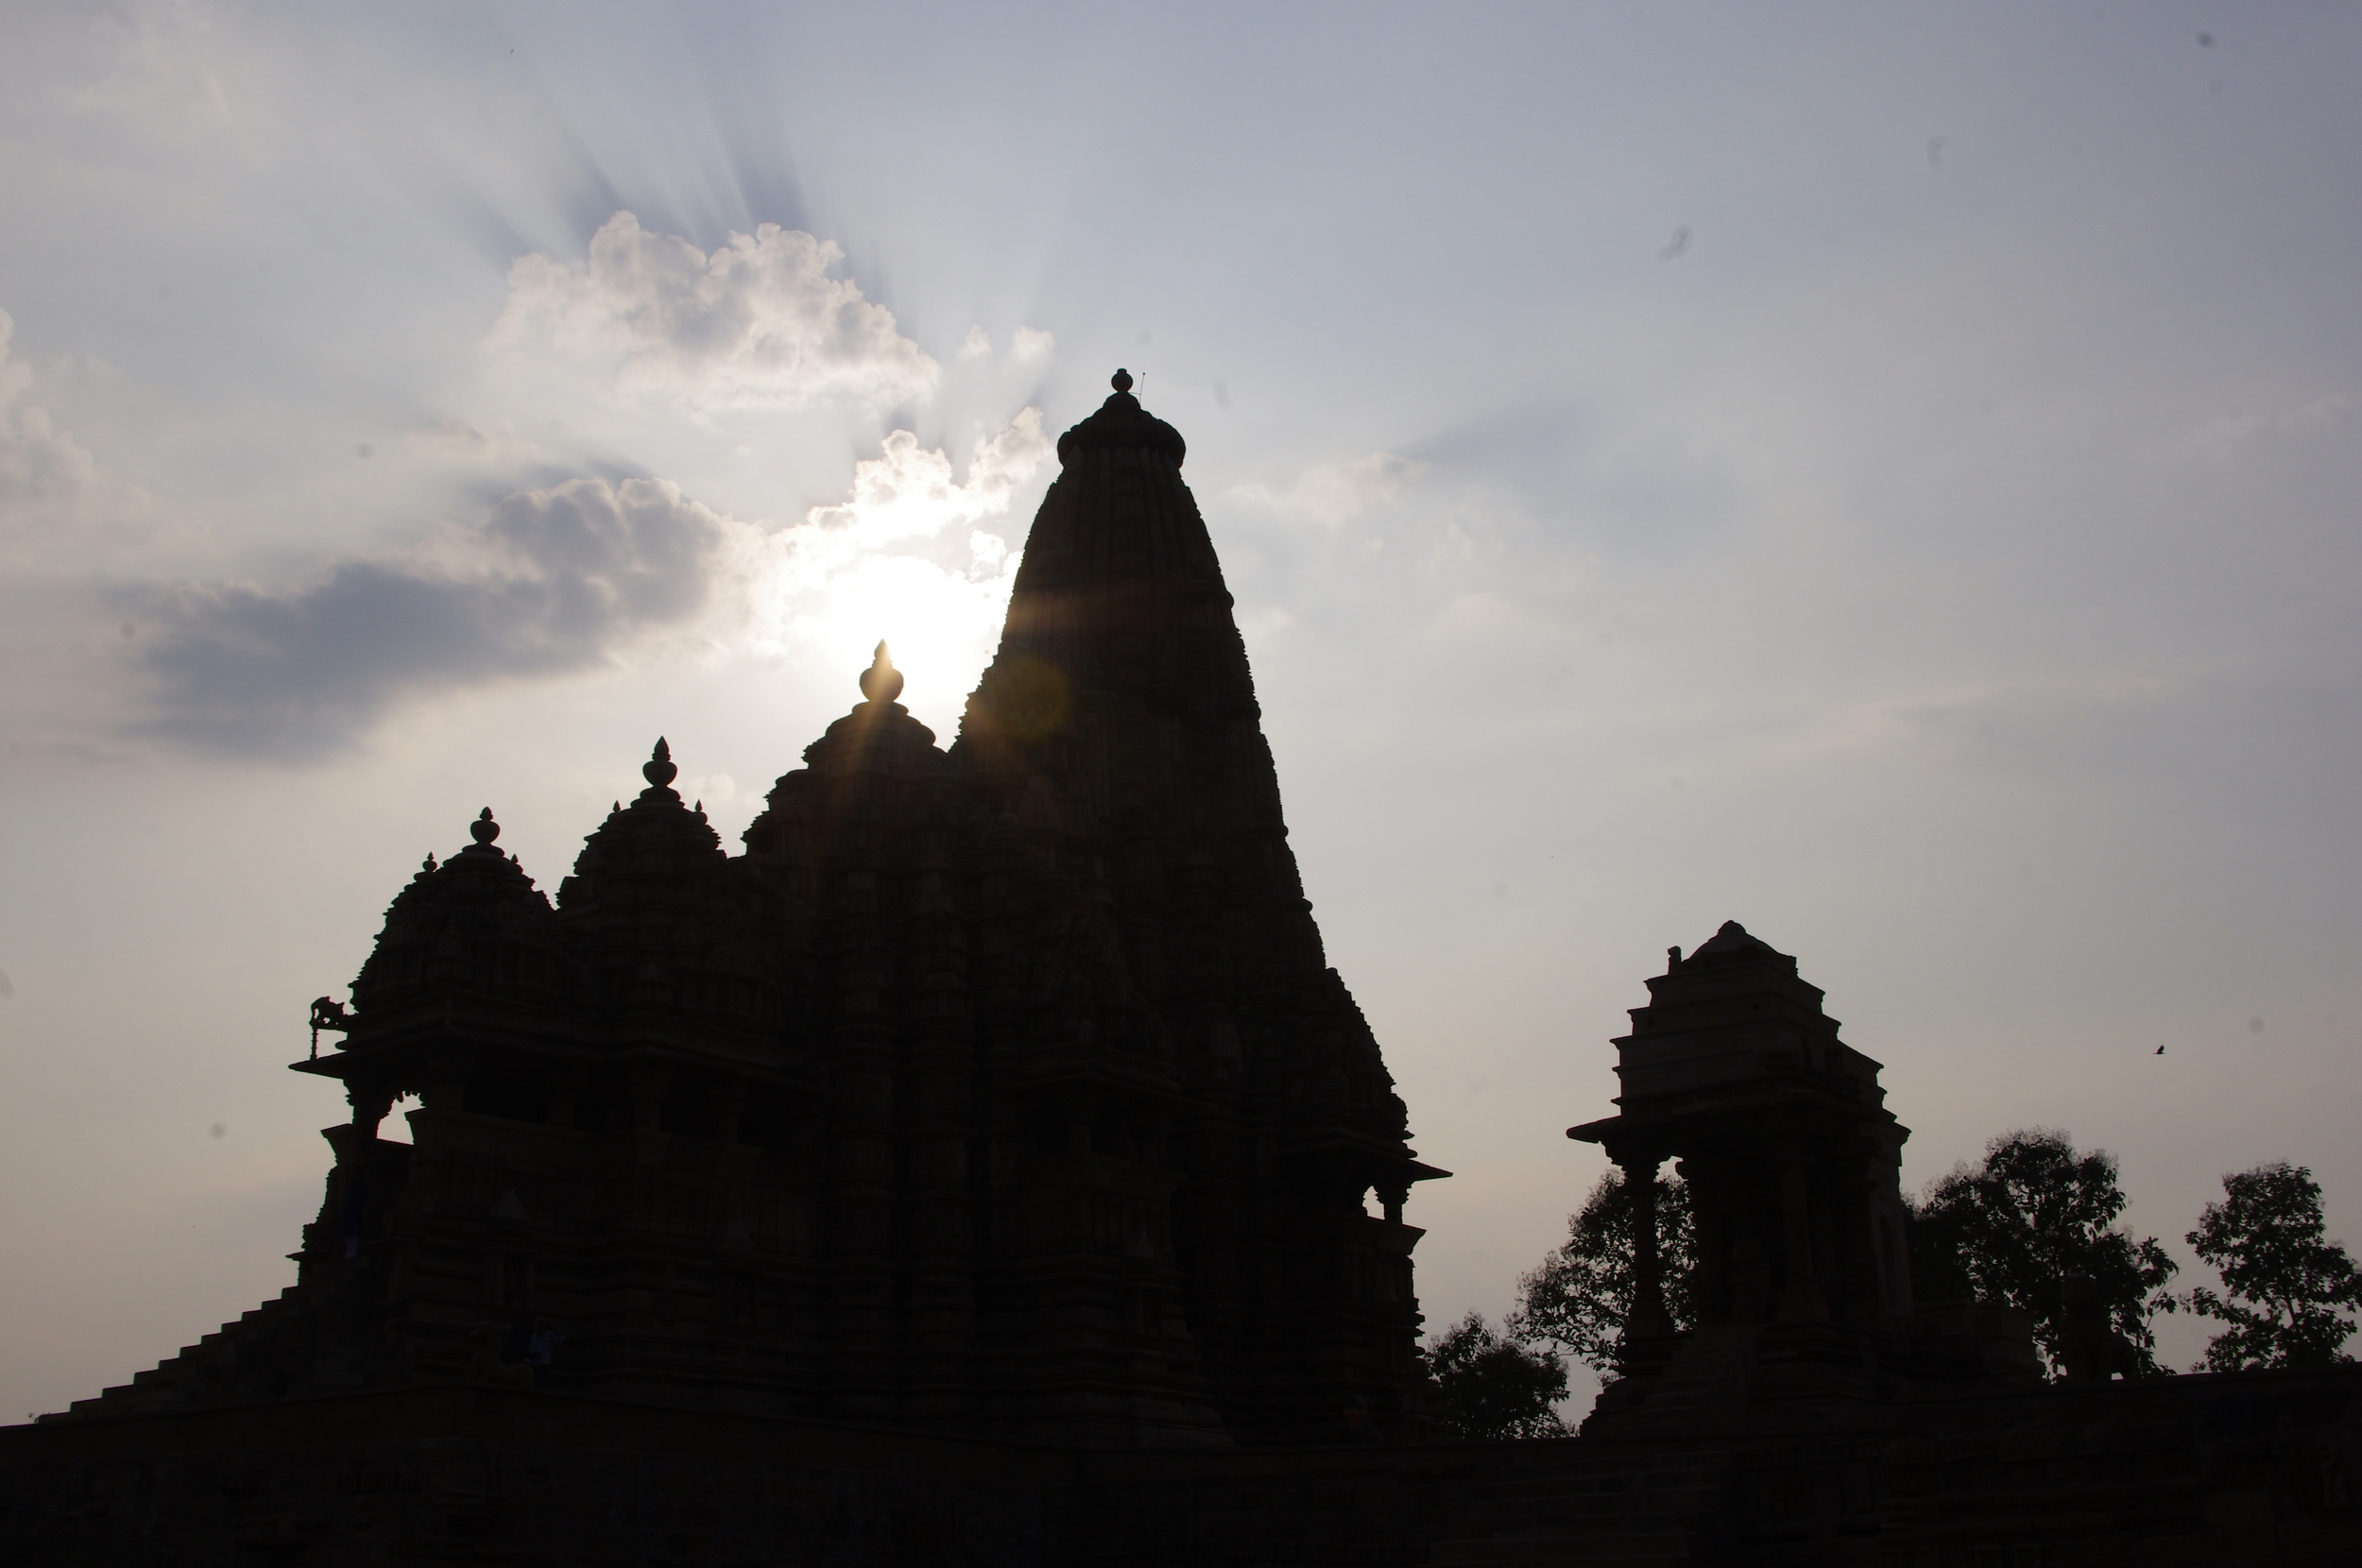 The sun setting behind a smaller group of temples.